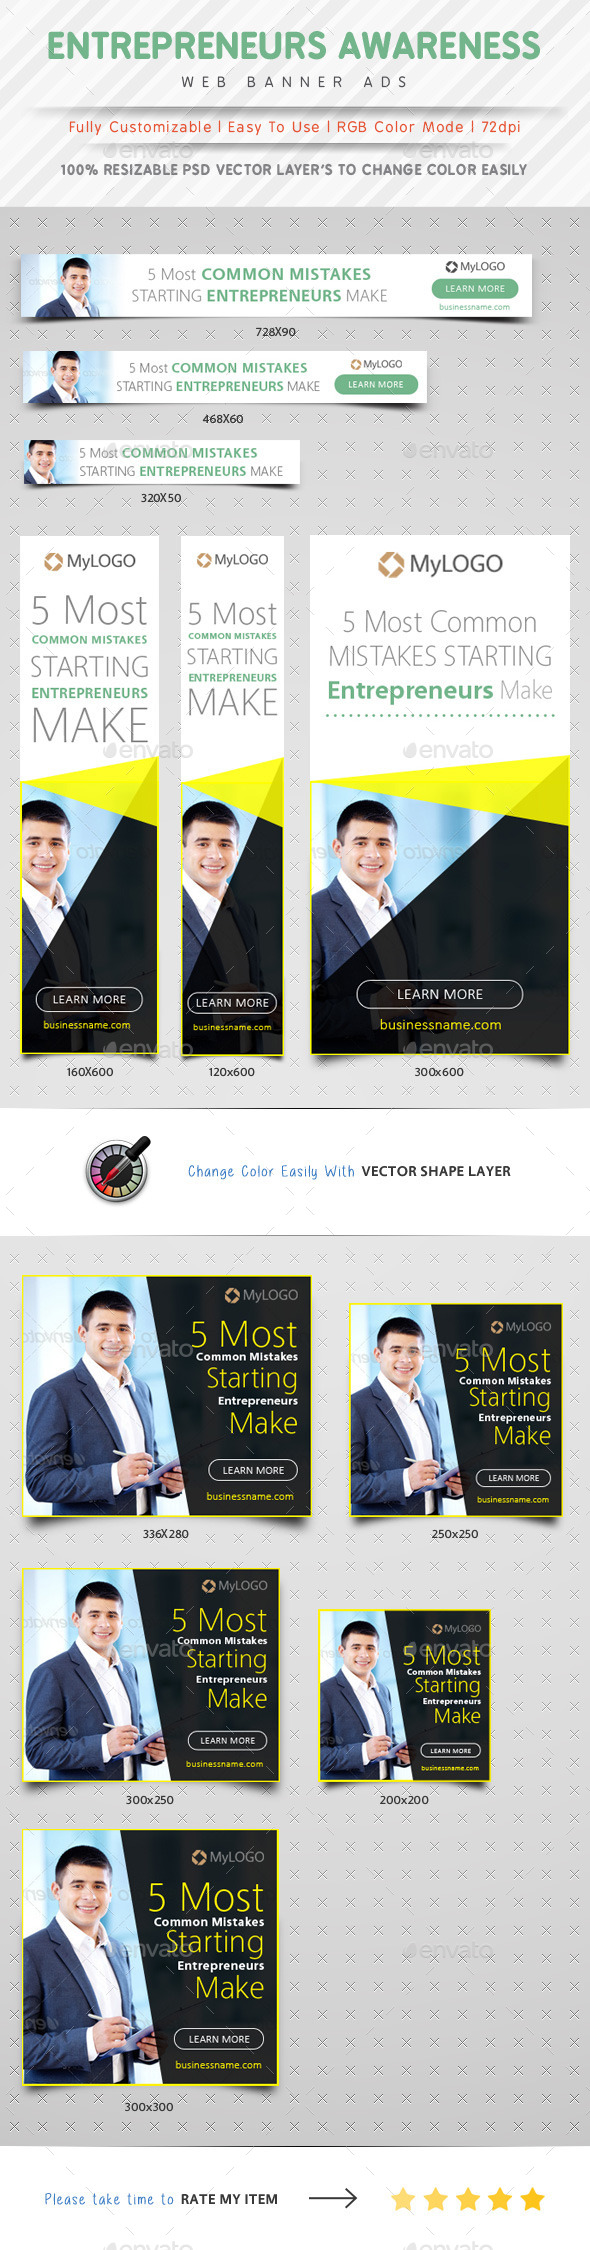 GraphicRiver Entrepreneurs Awareness Web Banner Ads 10323176